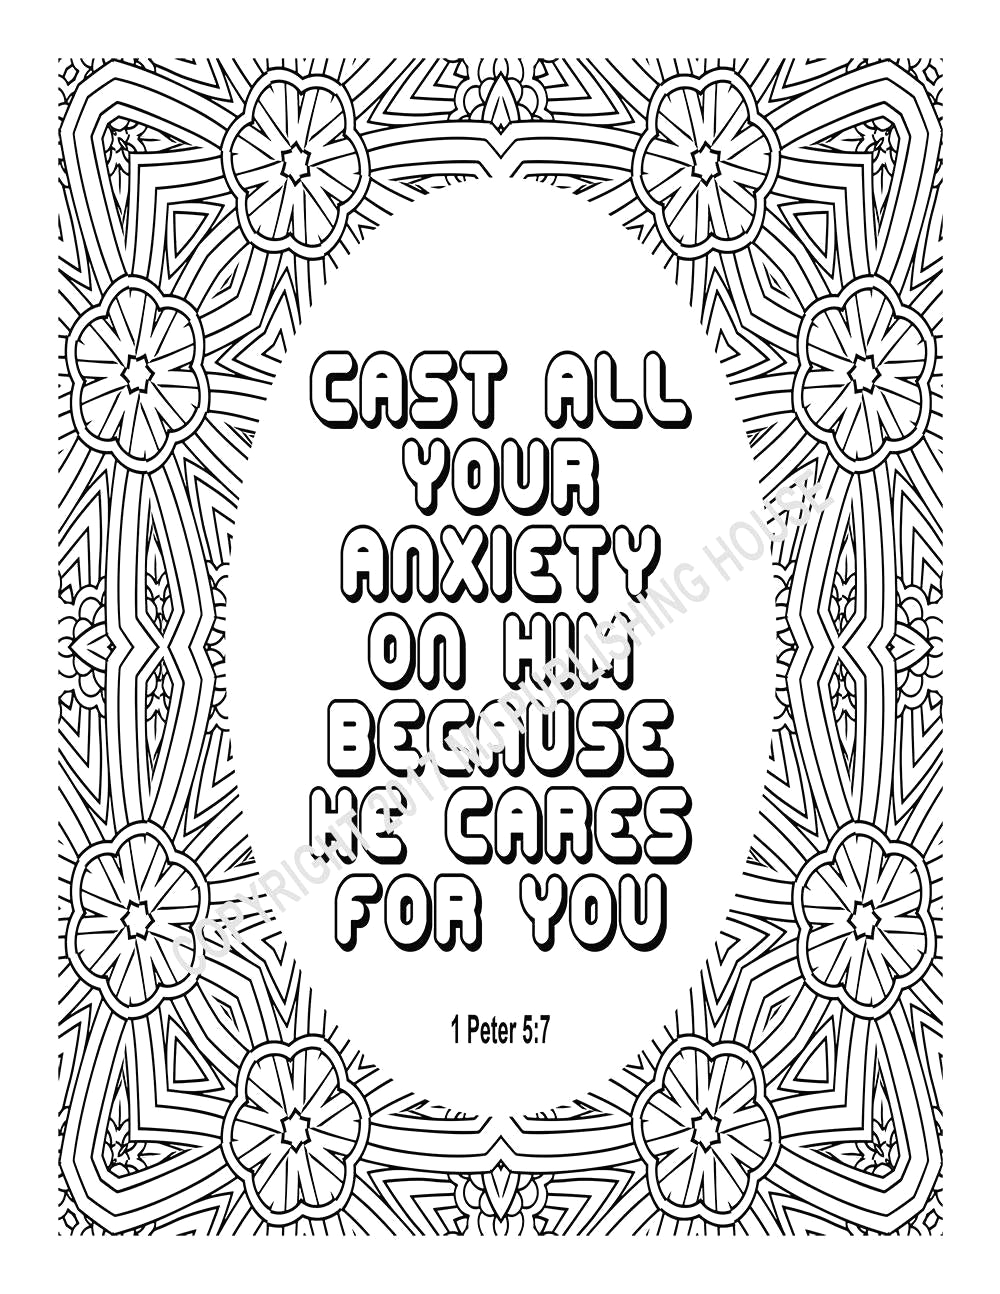 bible verse coloring page cast all your